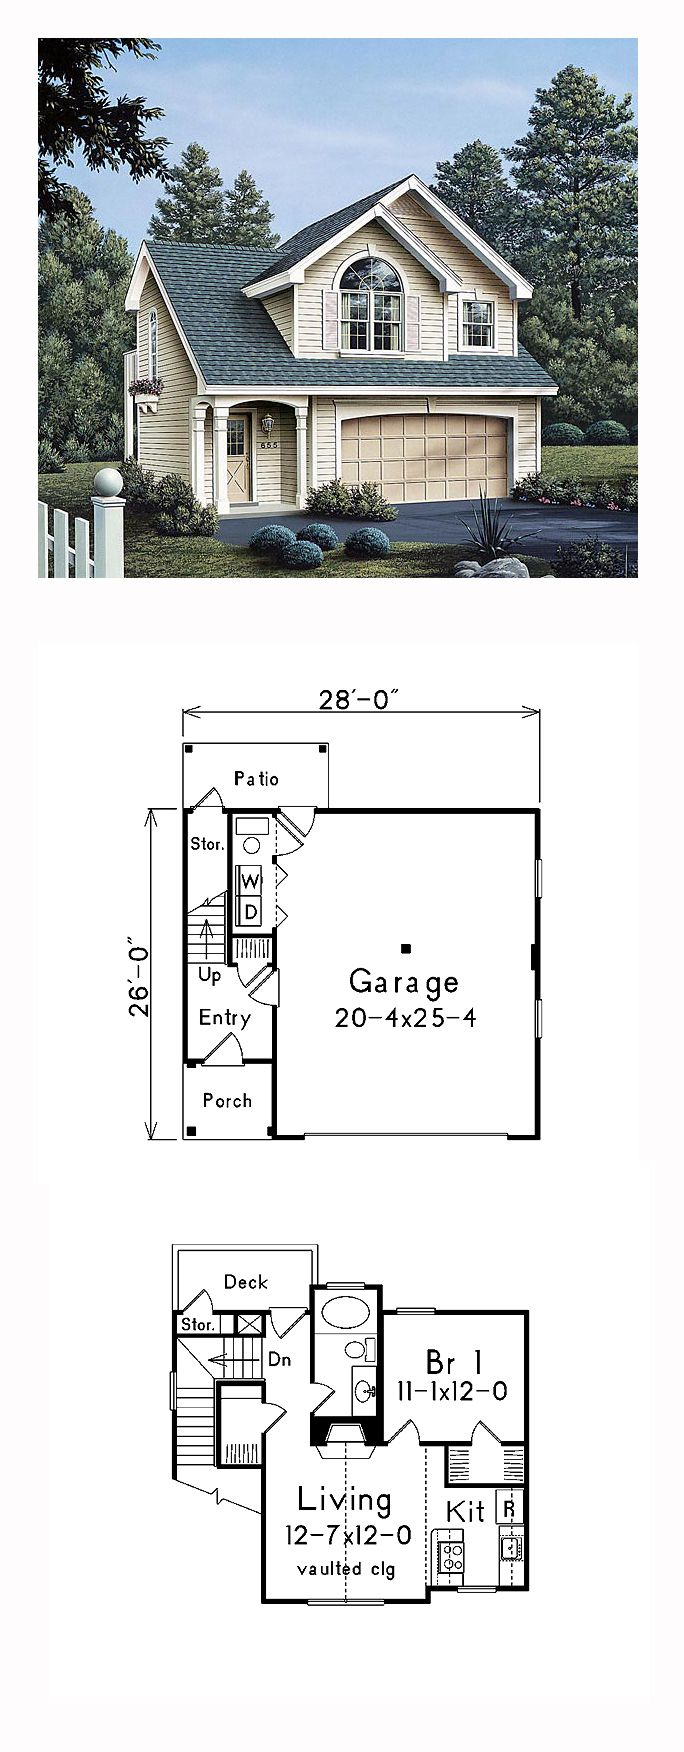 Traditional Style Garage Living Plan 86903 With 1 Bed 1 Bath 2 Car Garage Carriage House Plans Garage Apartment Plans Garage Apartment Plan